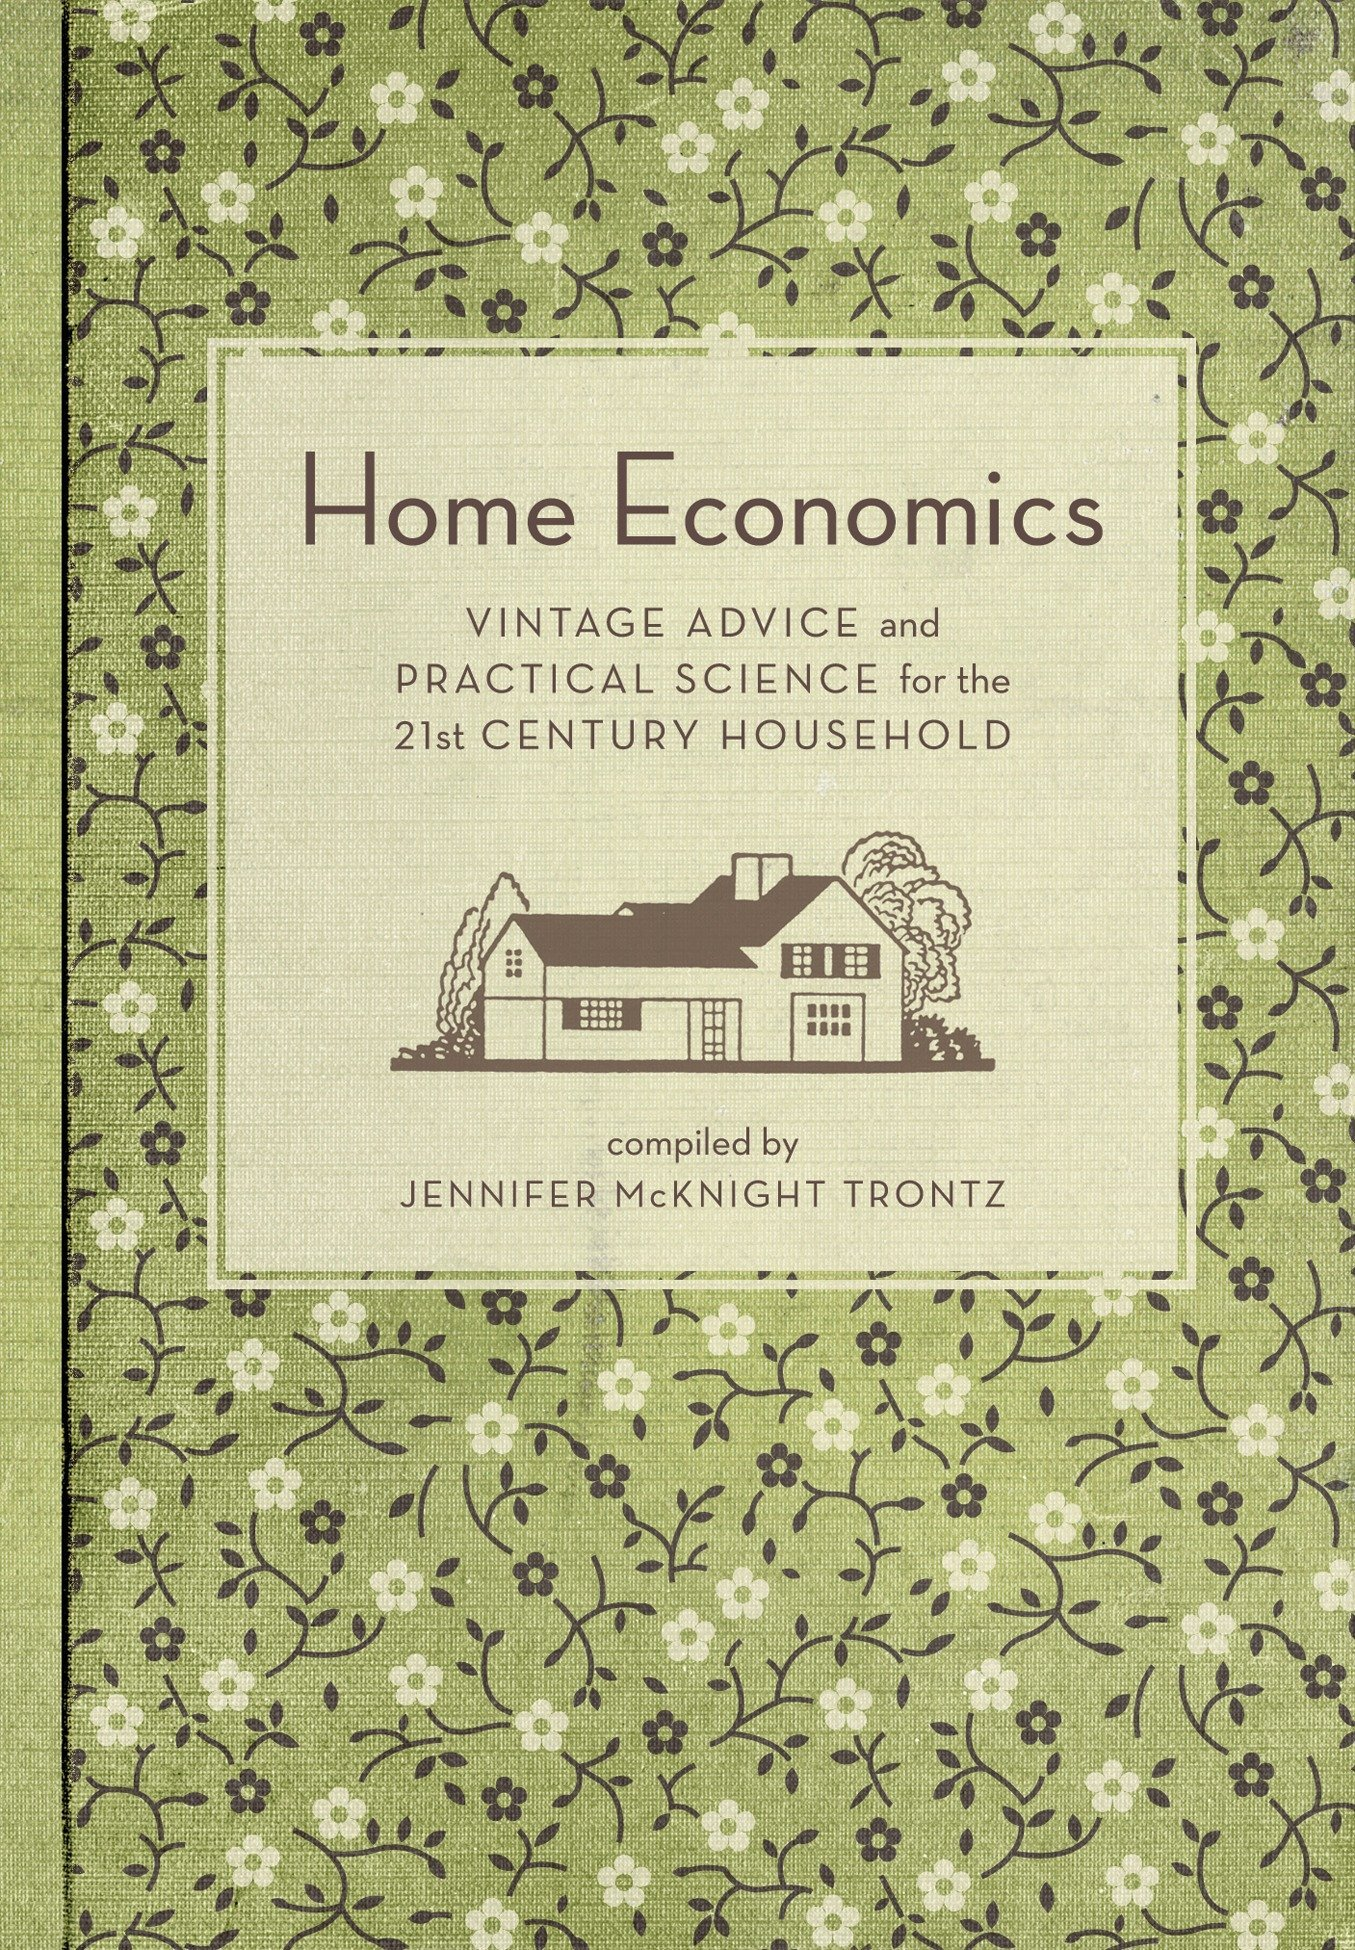 Home Economics Vintage Advice And Practical Science For The 21st Century Household Trontz Jennifer Mcknight 8601400989777 Books